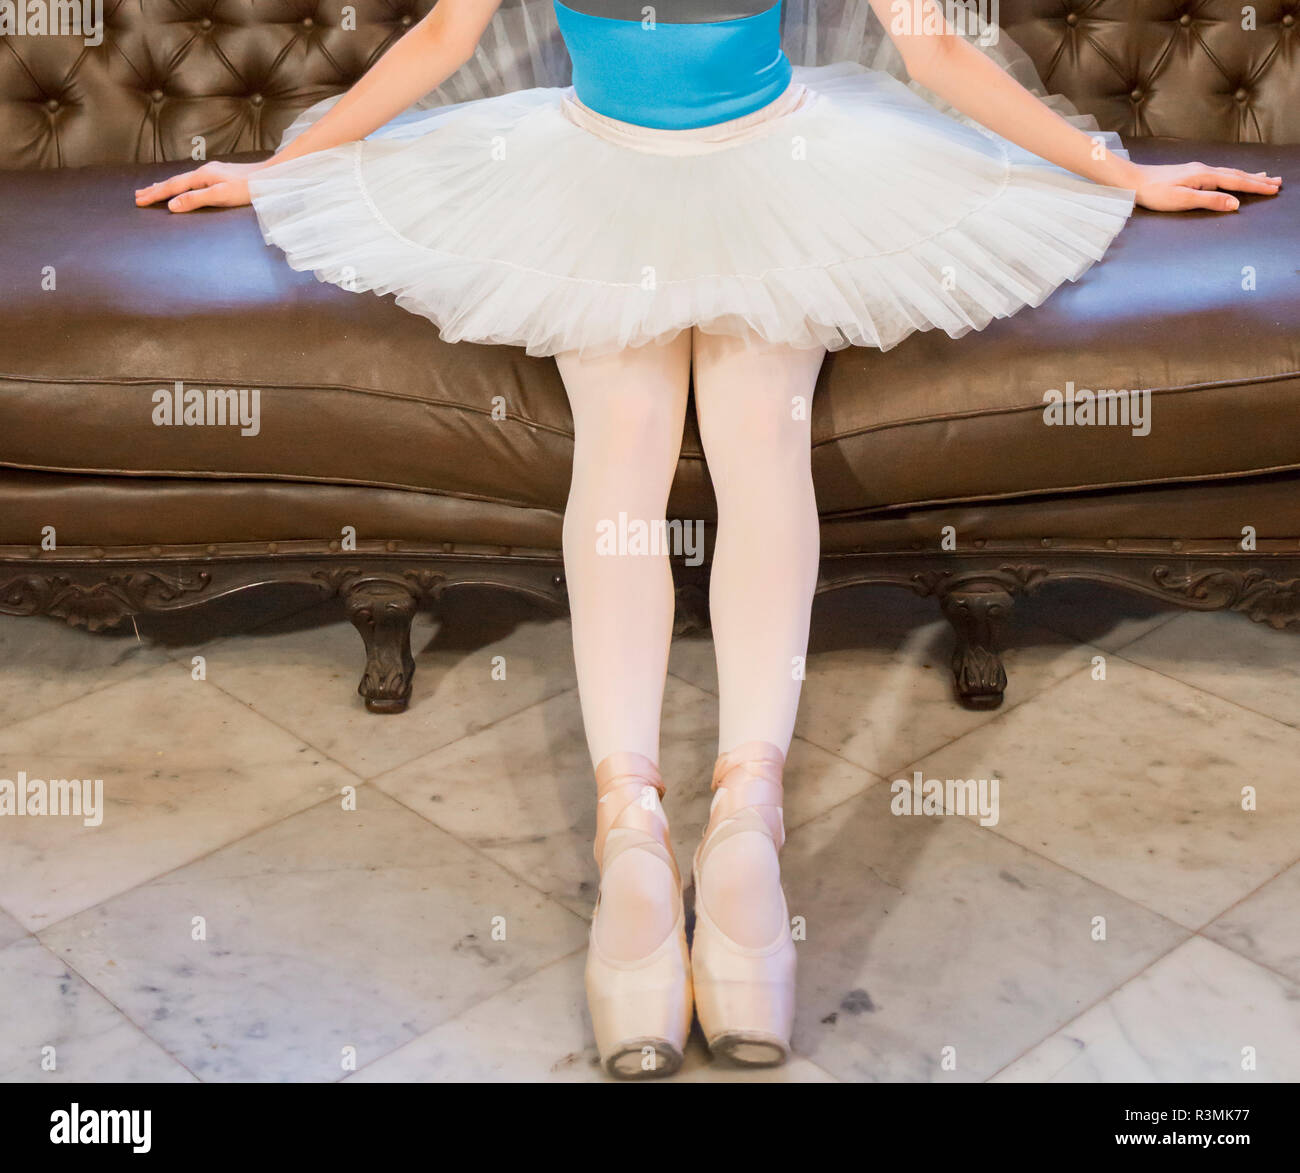 Incredible Cuba Havana Close Up Of Ballerina Sitting On Antique Machost Co Dining Chair Design Ideas Machostcouk